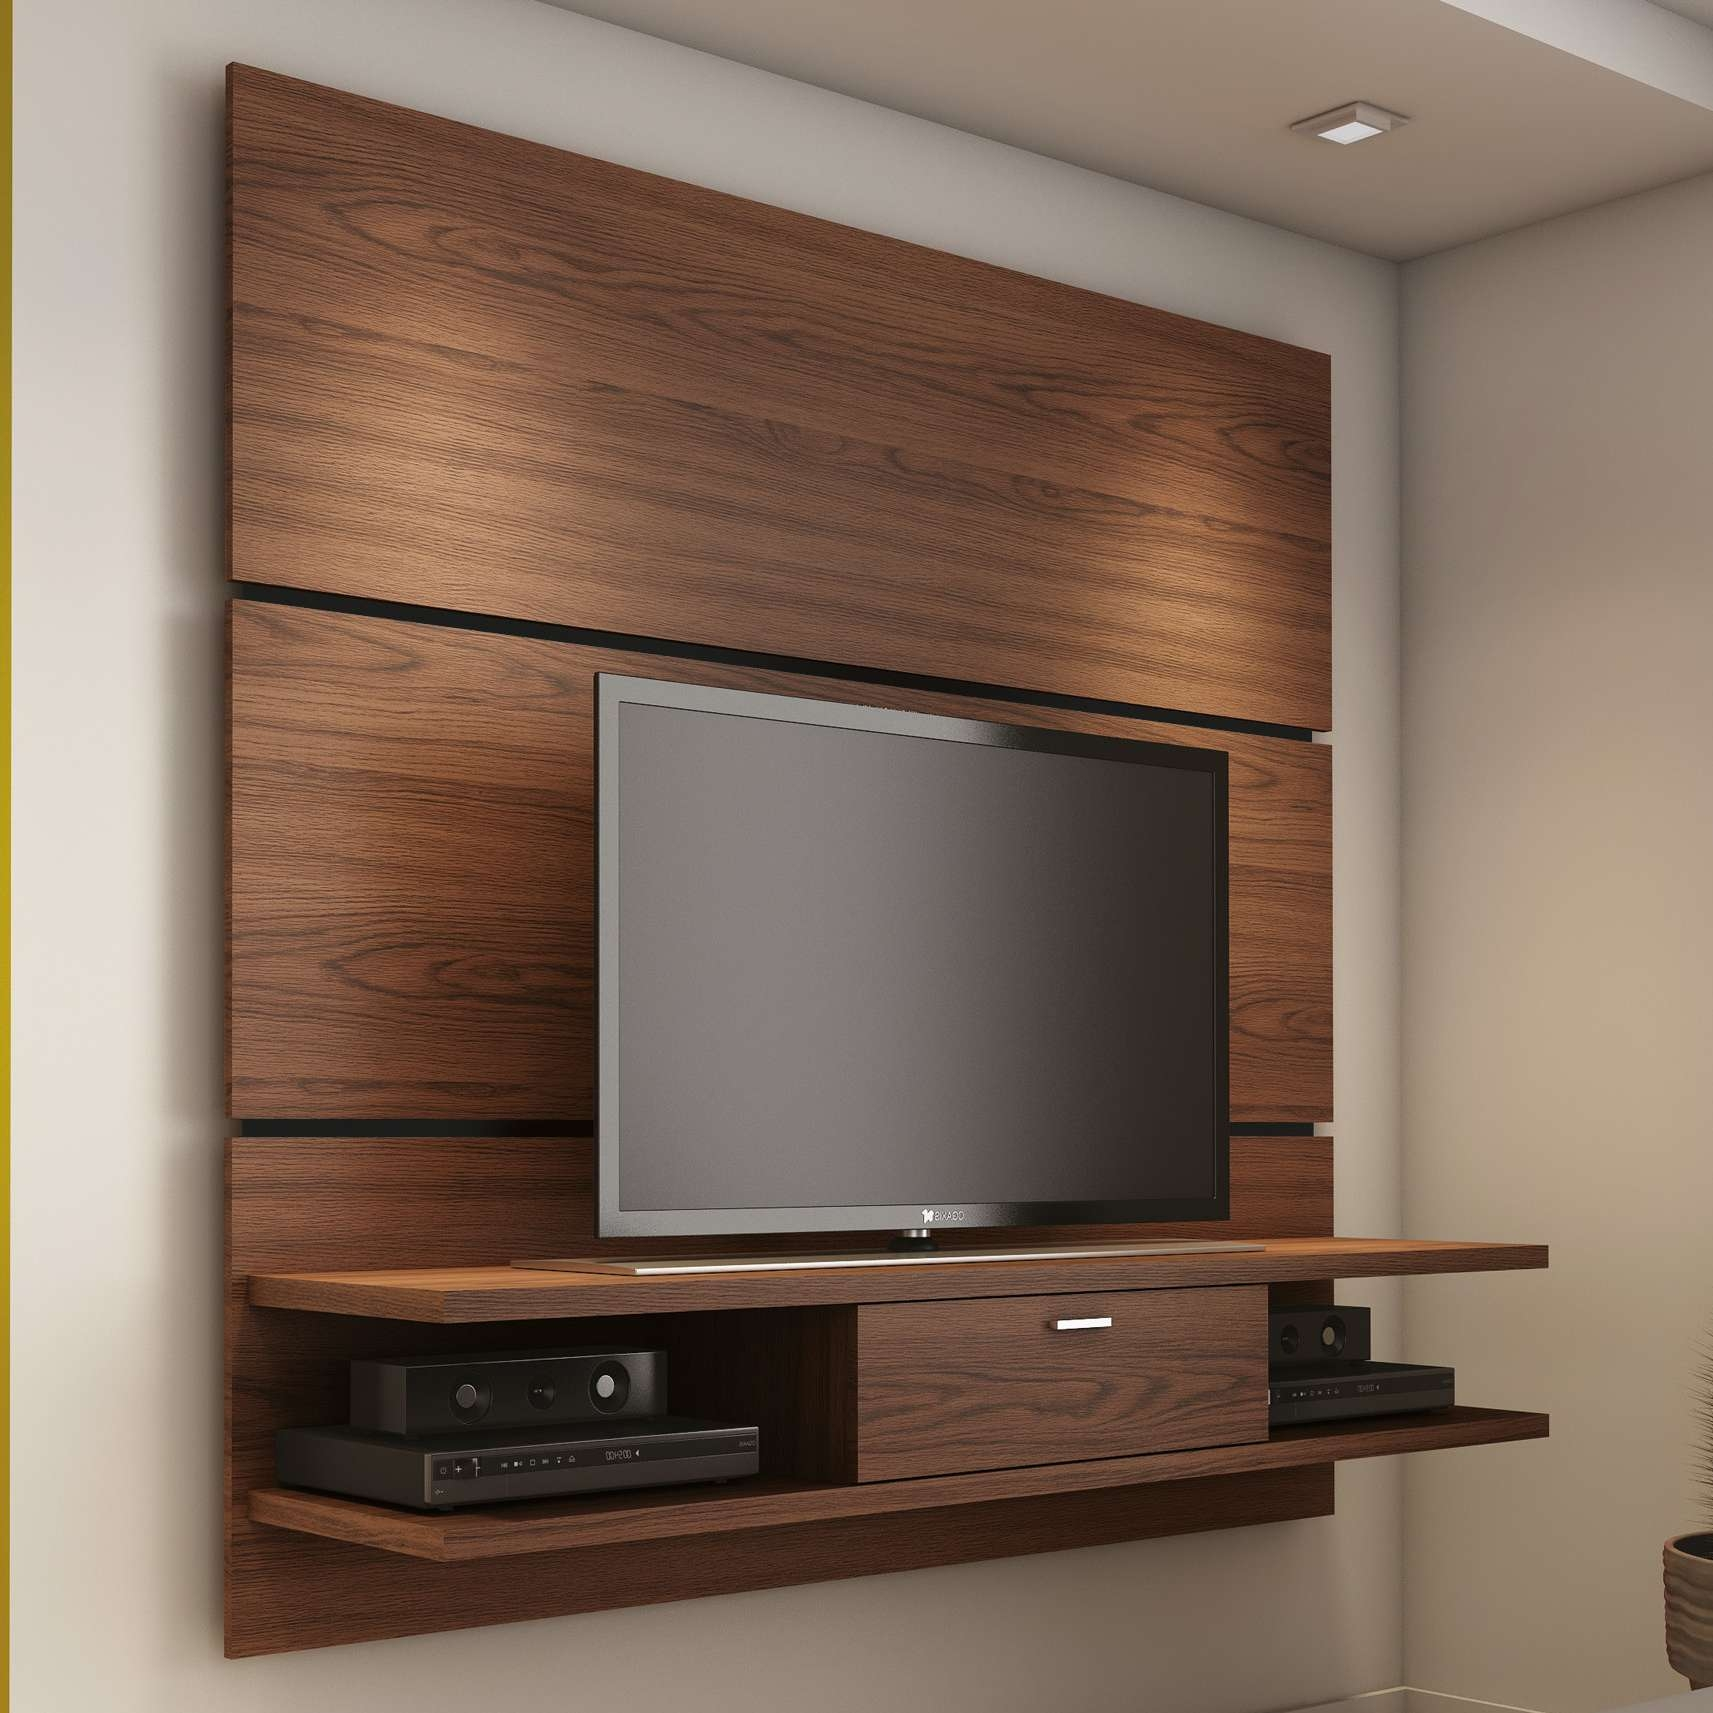 Wall Units: Best Wayfair Tv Stands Tv Stands For 65 Inch Flat Within Tv Cabinets And Wall Units (View 6 of 20)